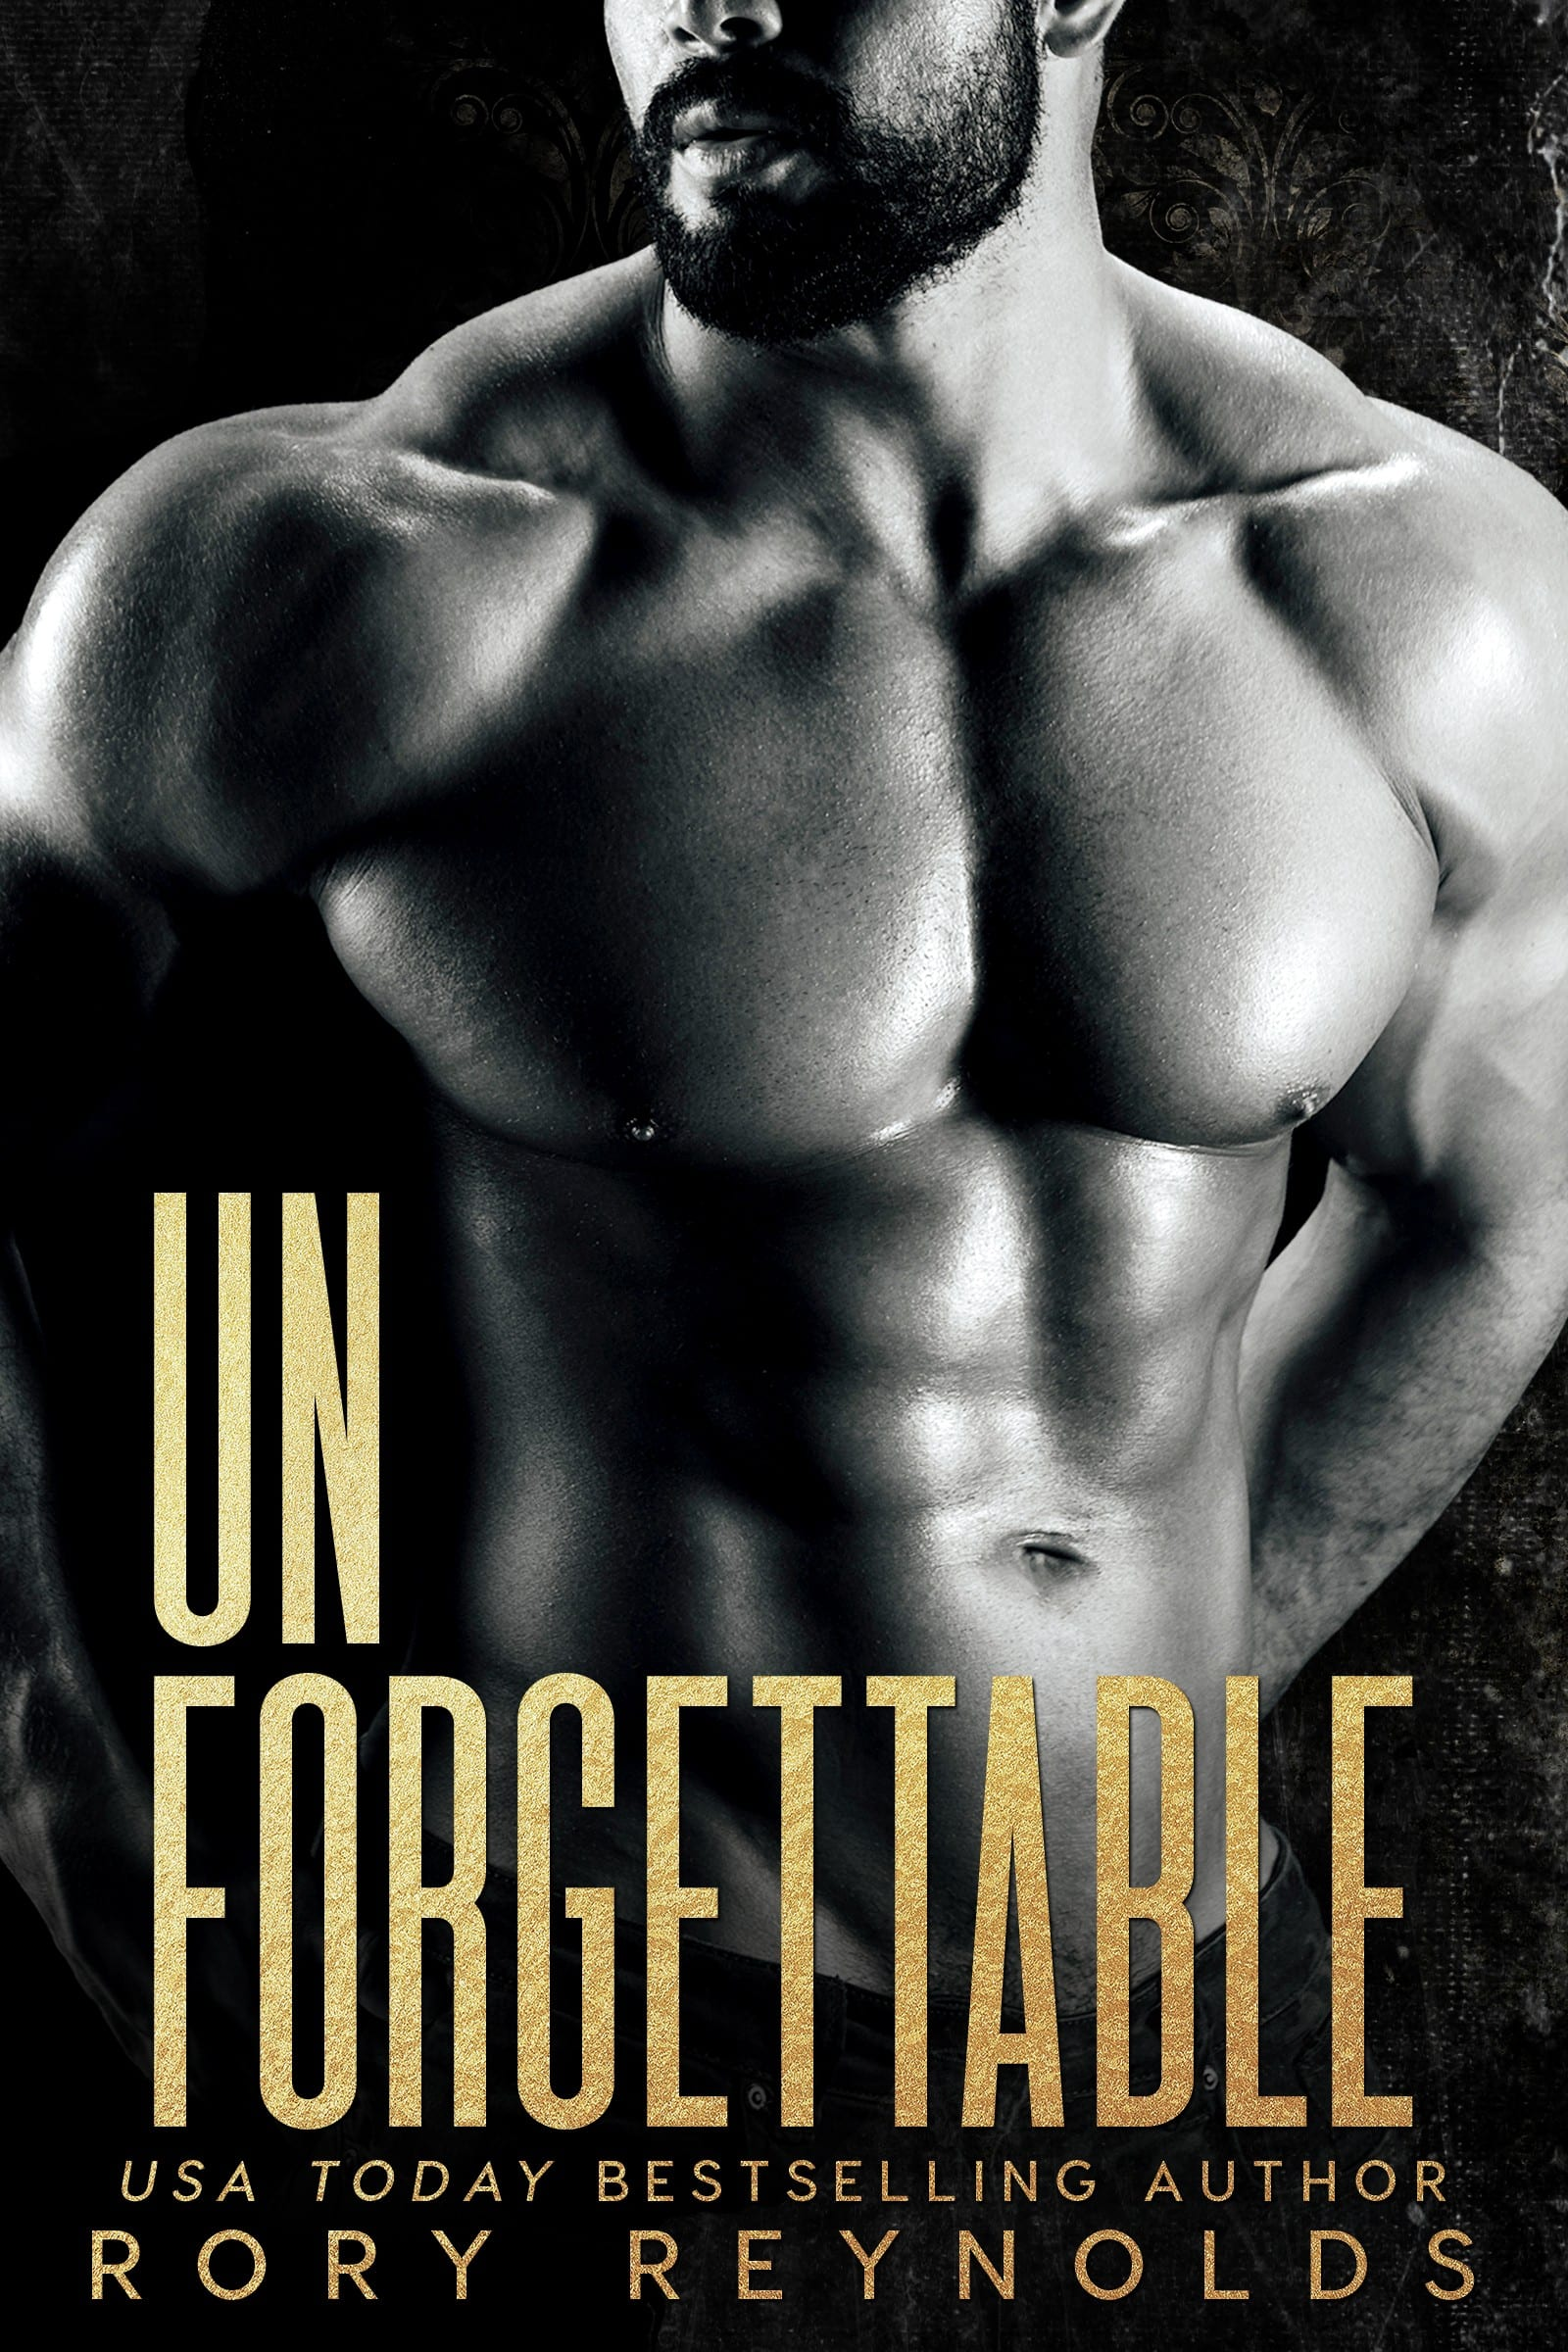 Unforgettable by Rory Reynolds